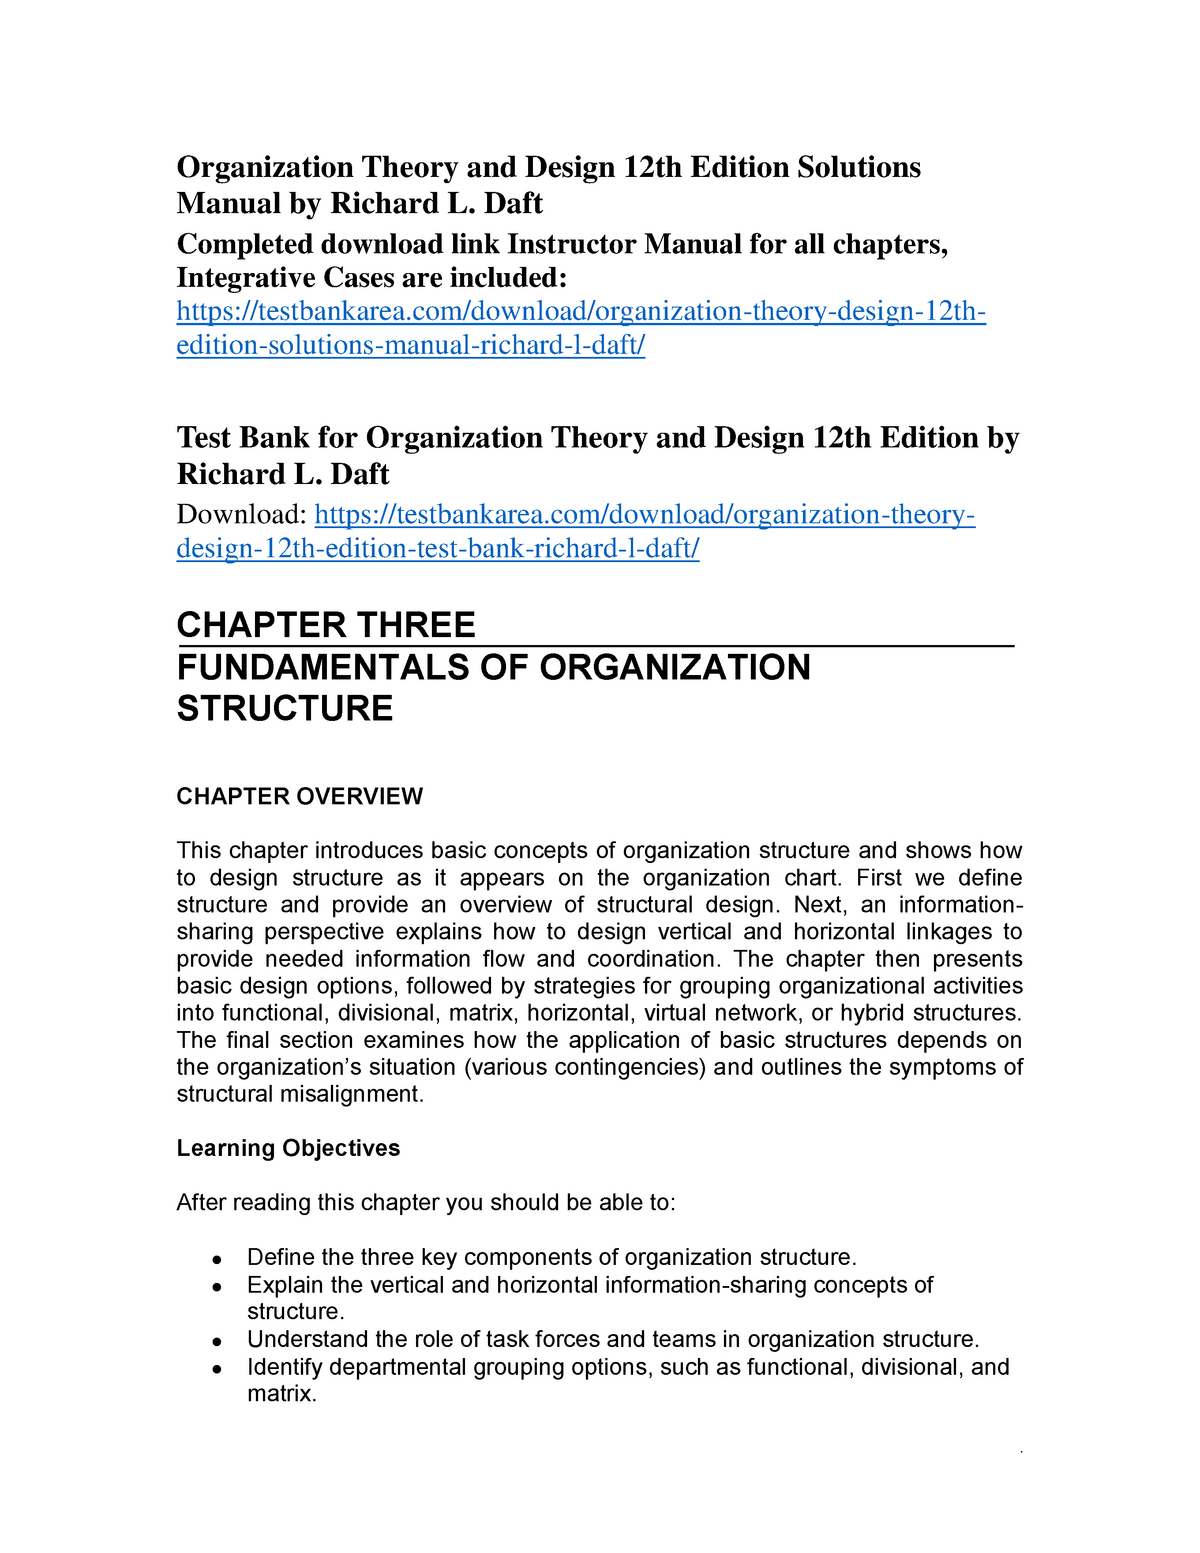 Organization Theory And Design 12th Edition Solutions Manual By Richard L Studocu